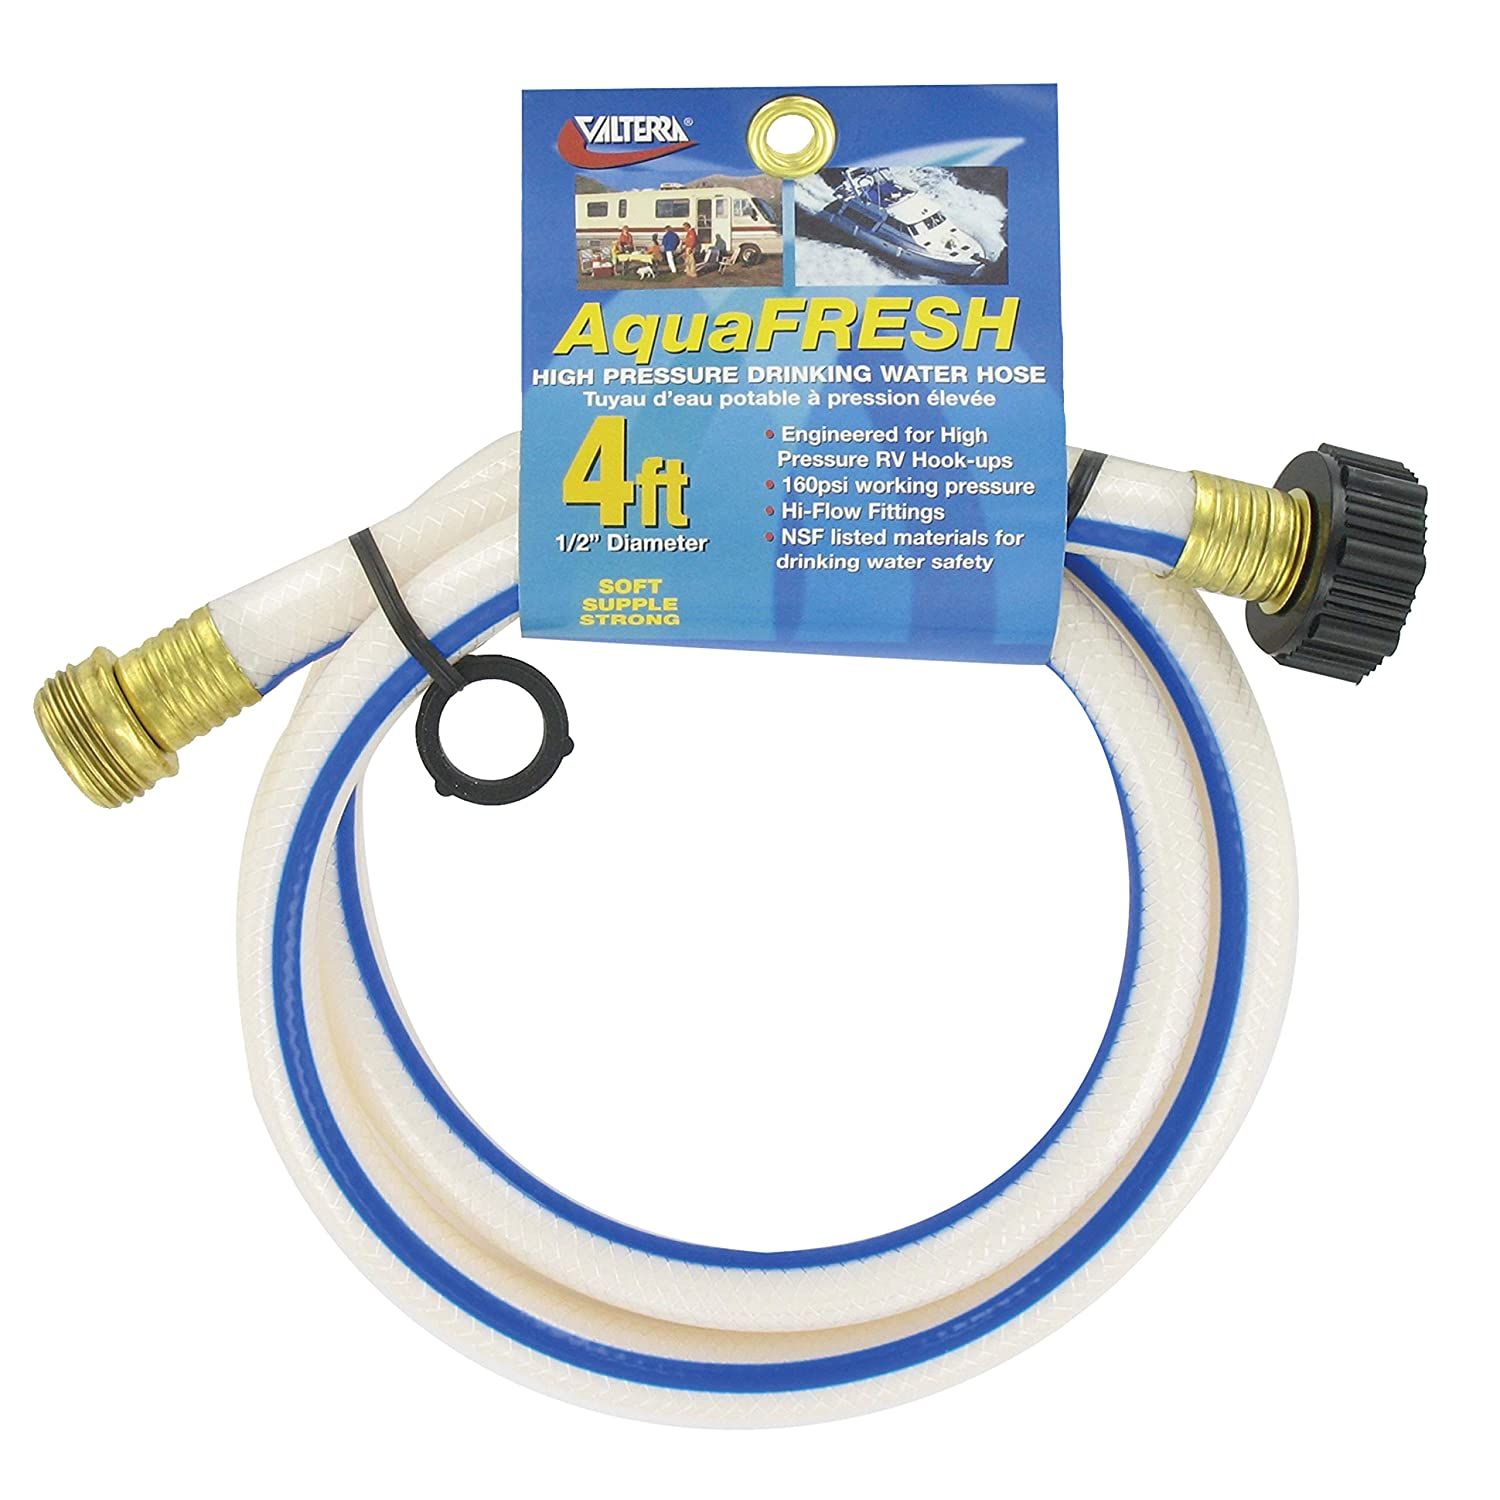 "Valterra AquaFresh High Pressure Drinking Water Hose, Water Hose Hookup for RV - 1/2"" x 4', White"